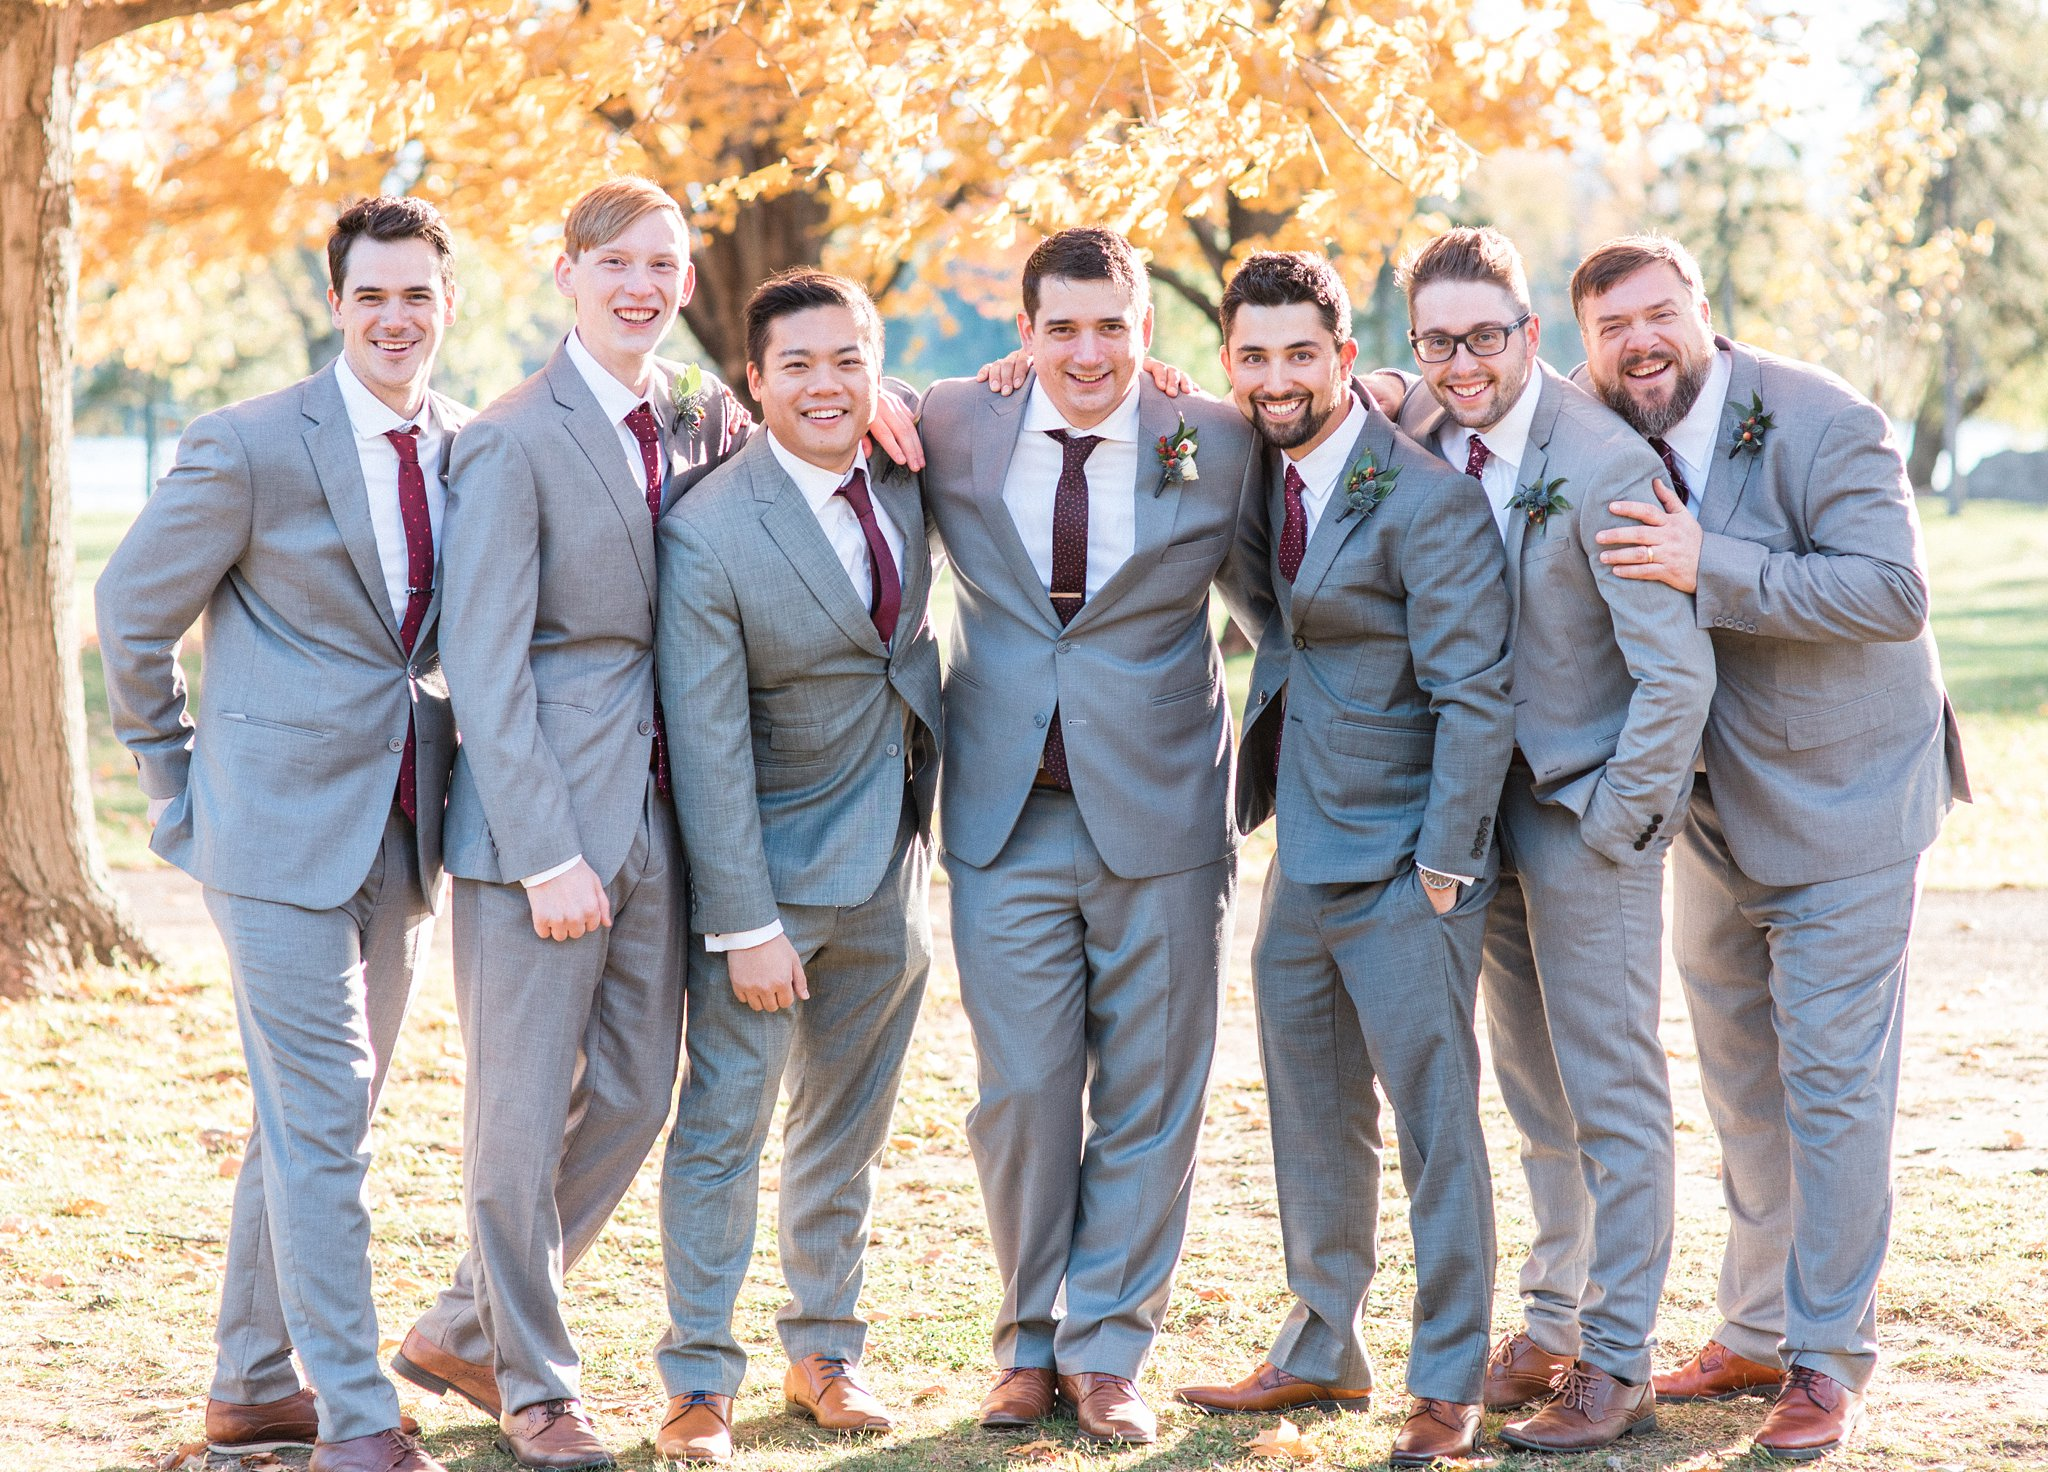 Suit Up! suit rental Ottawa, Mooney's Bay, Hilton Garden Inn Ottawa Airport Hotel Wedding